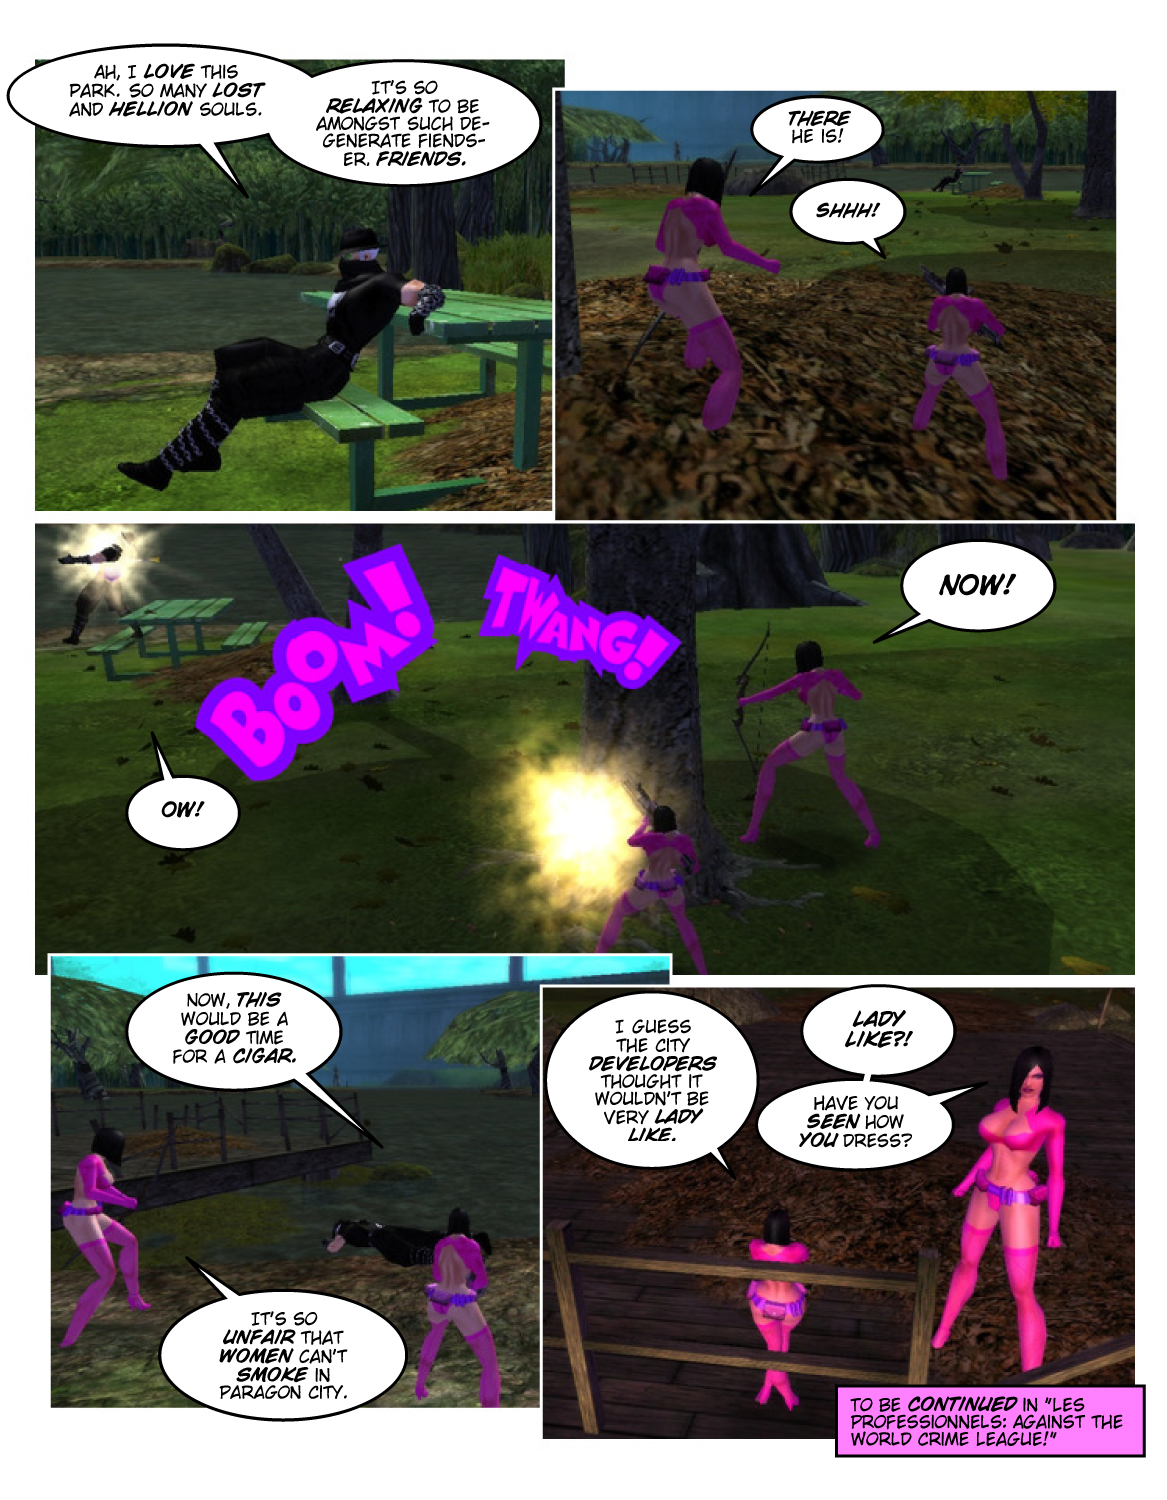 Les Professionnels 1 Page 8 – Smoking